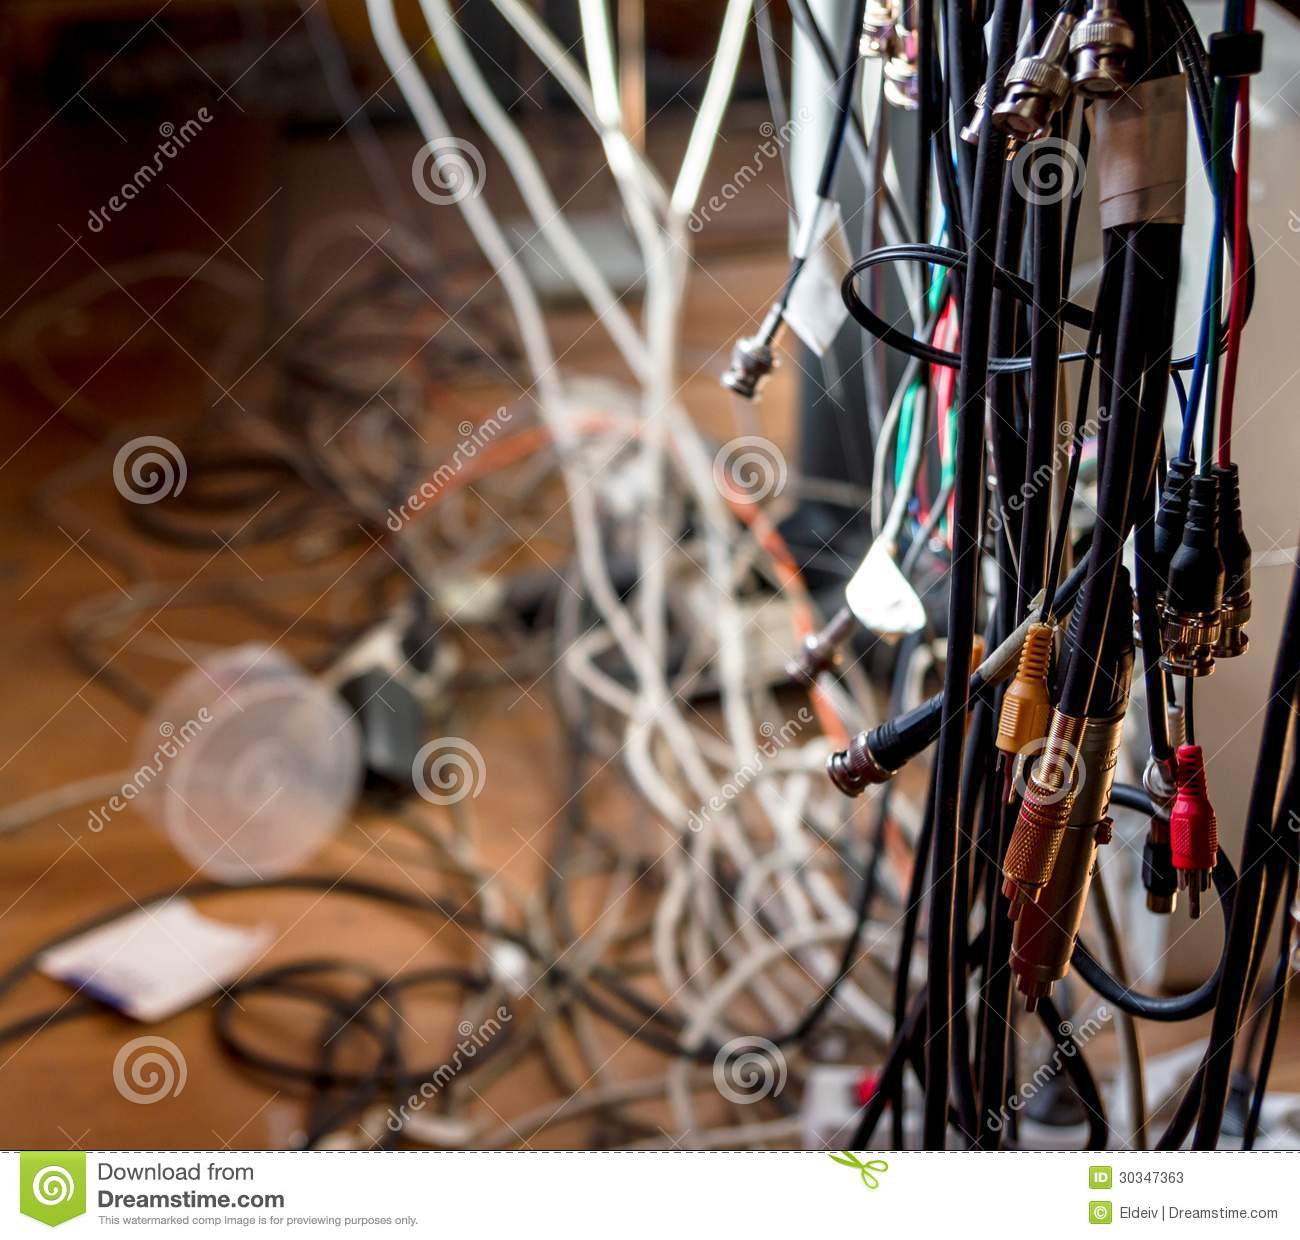 cable mess stock image image of obsolete installation 30347363. Black Bedroom Furniture Sets. Home Design Ideas